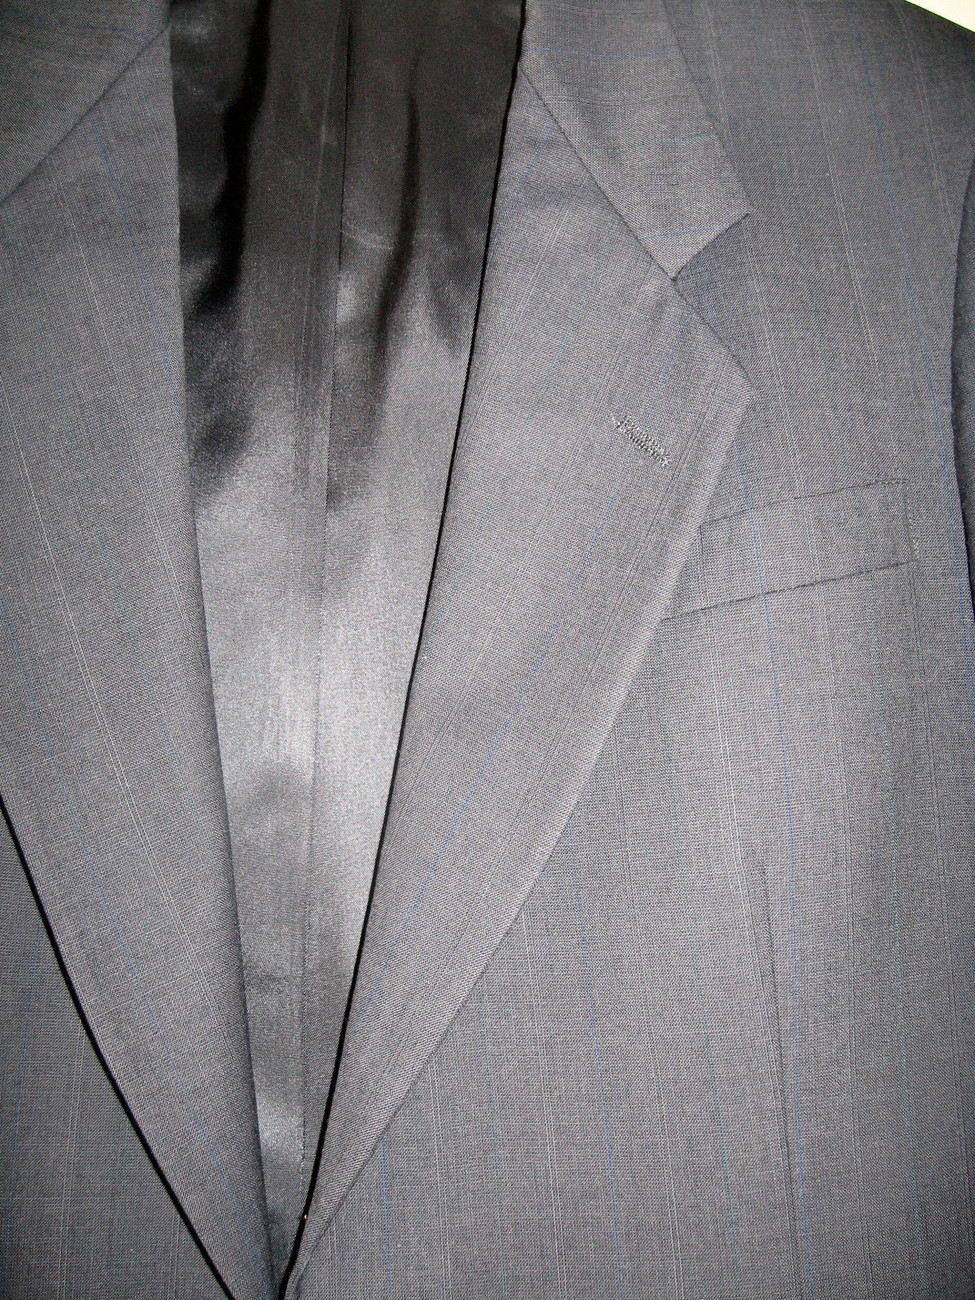 MEN'S BLAZER SIZE 40 R, GREY, WOOL, TAILORED IN USA